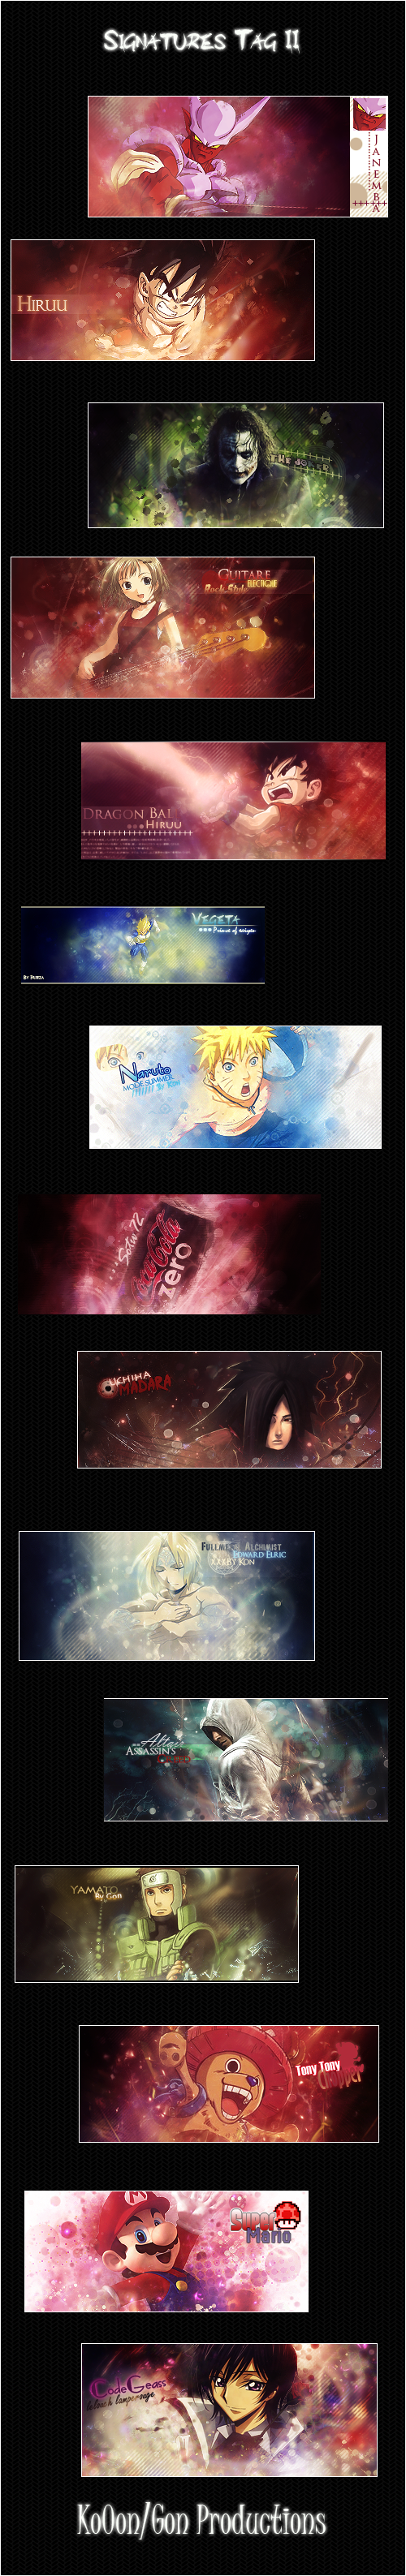 ~|²#Gon's_Gallery#²|~ Signature_wall_II_by_Ko0on